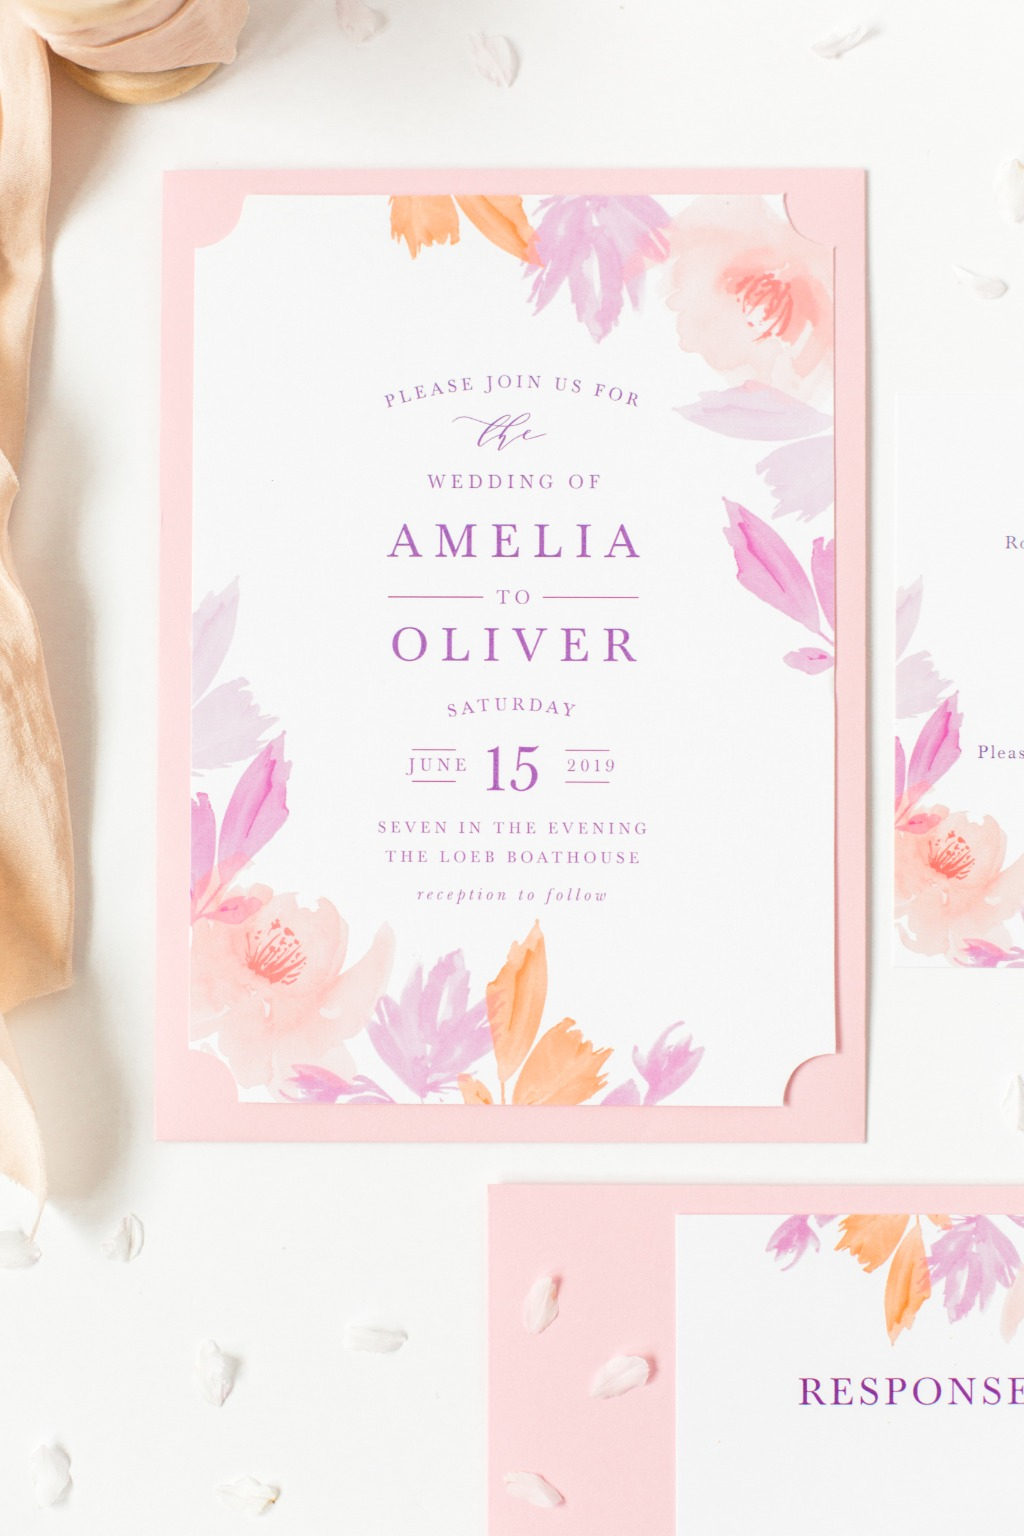 Your guests will adore the Water Rose Wedding Invitations! Watercolor roses and foliage surround your text and draw the eyes to the